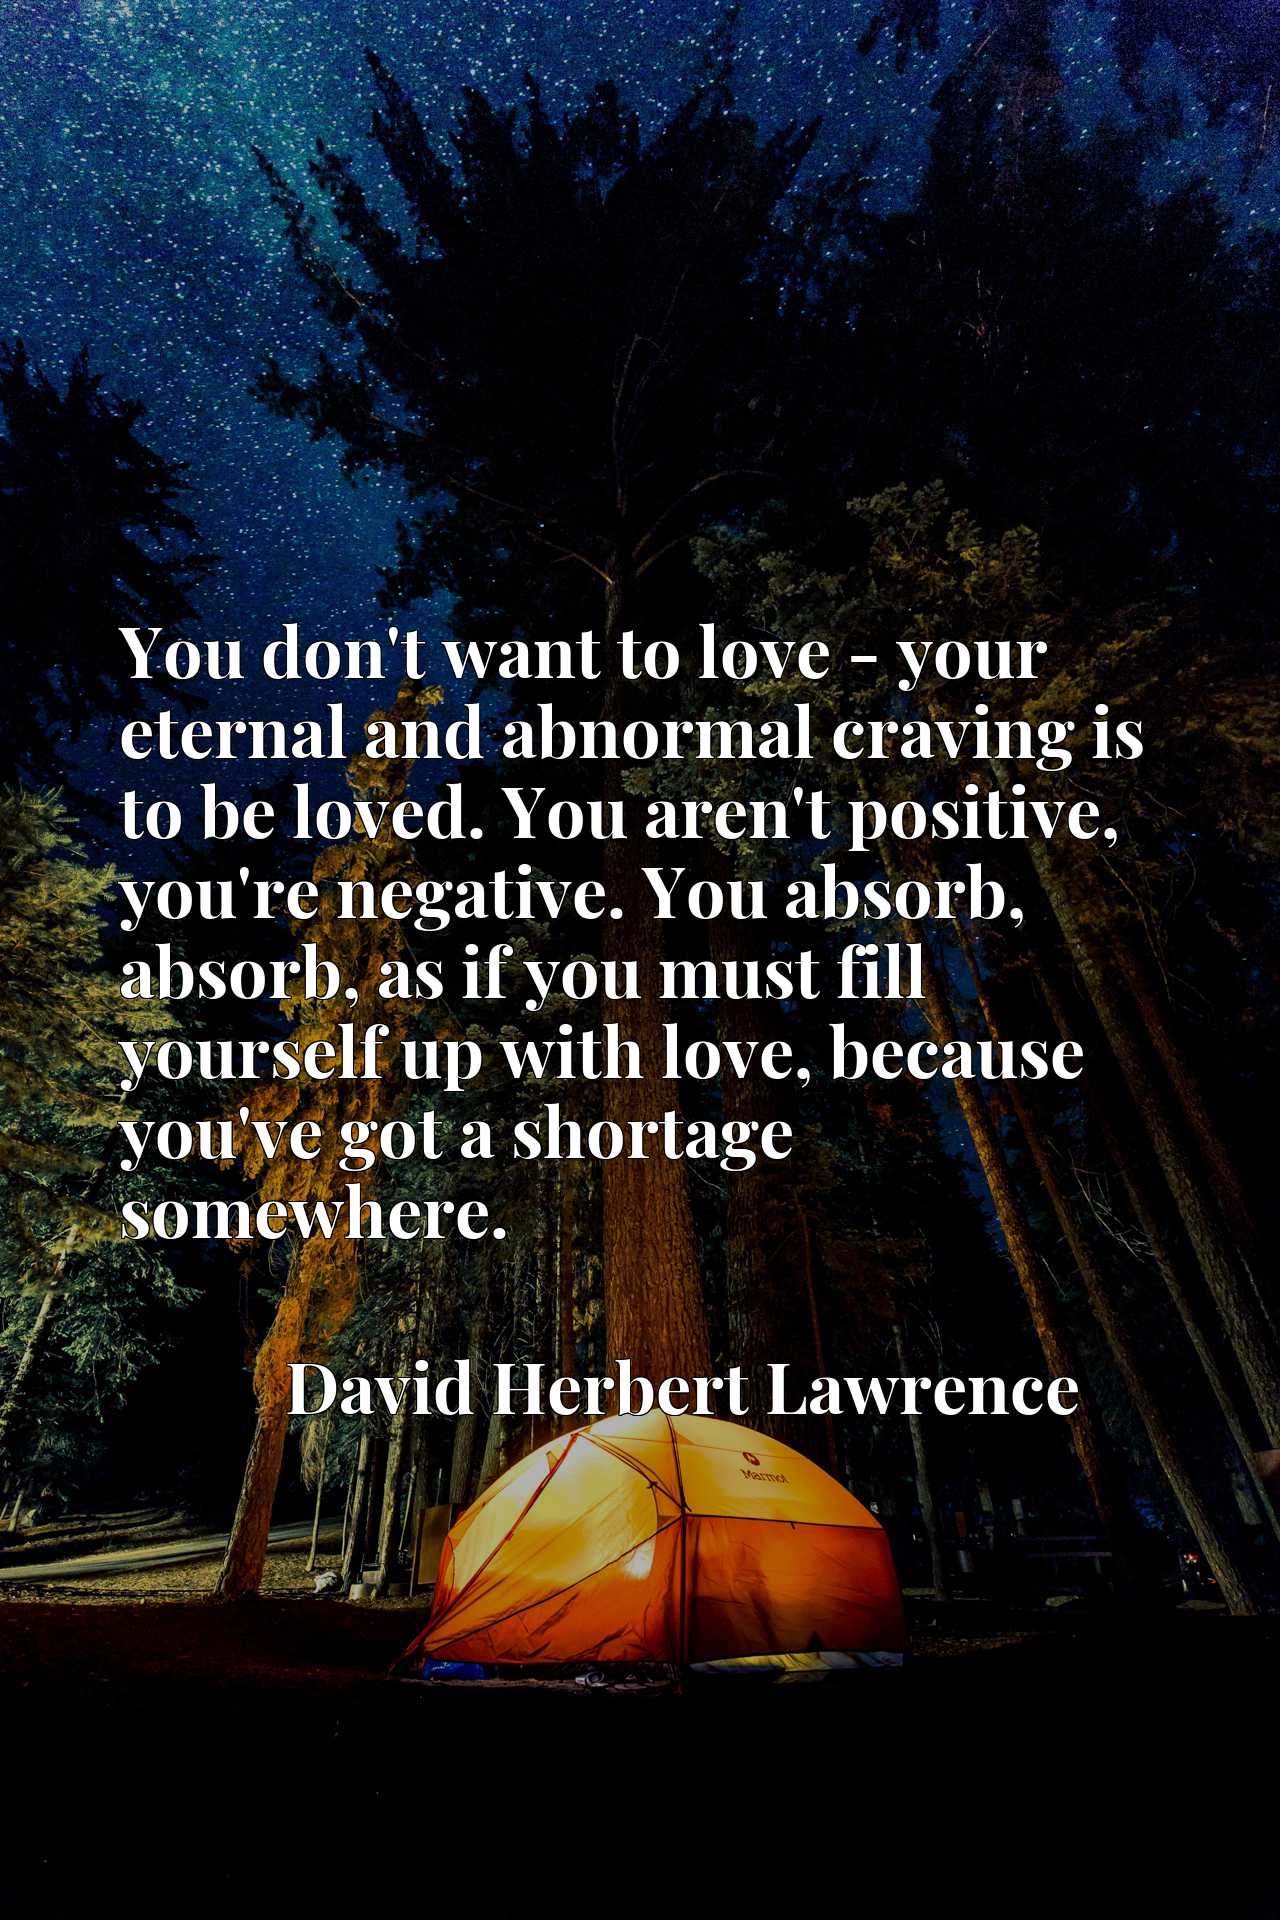 You don't want to love - your eternal and abnormal craving is to be loved. You aren't positive, you're negative. You absorb, absorb, as if you must fill yourself up with love, because you've got a shortage somewhere.